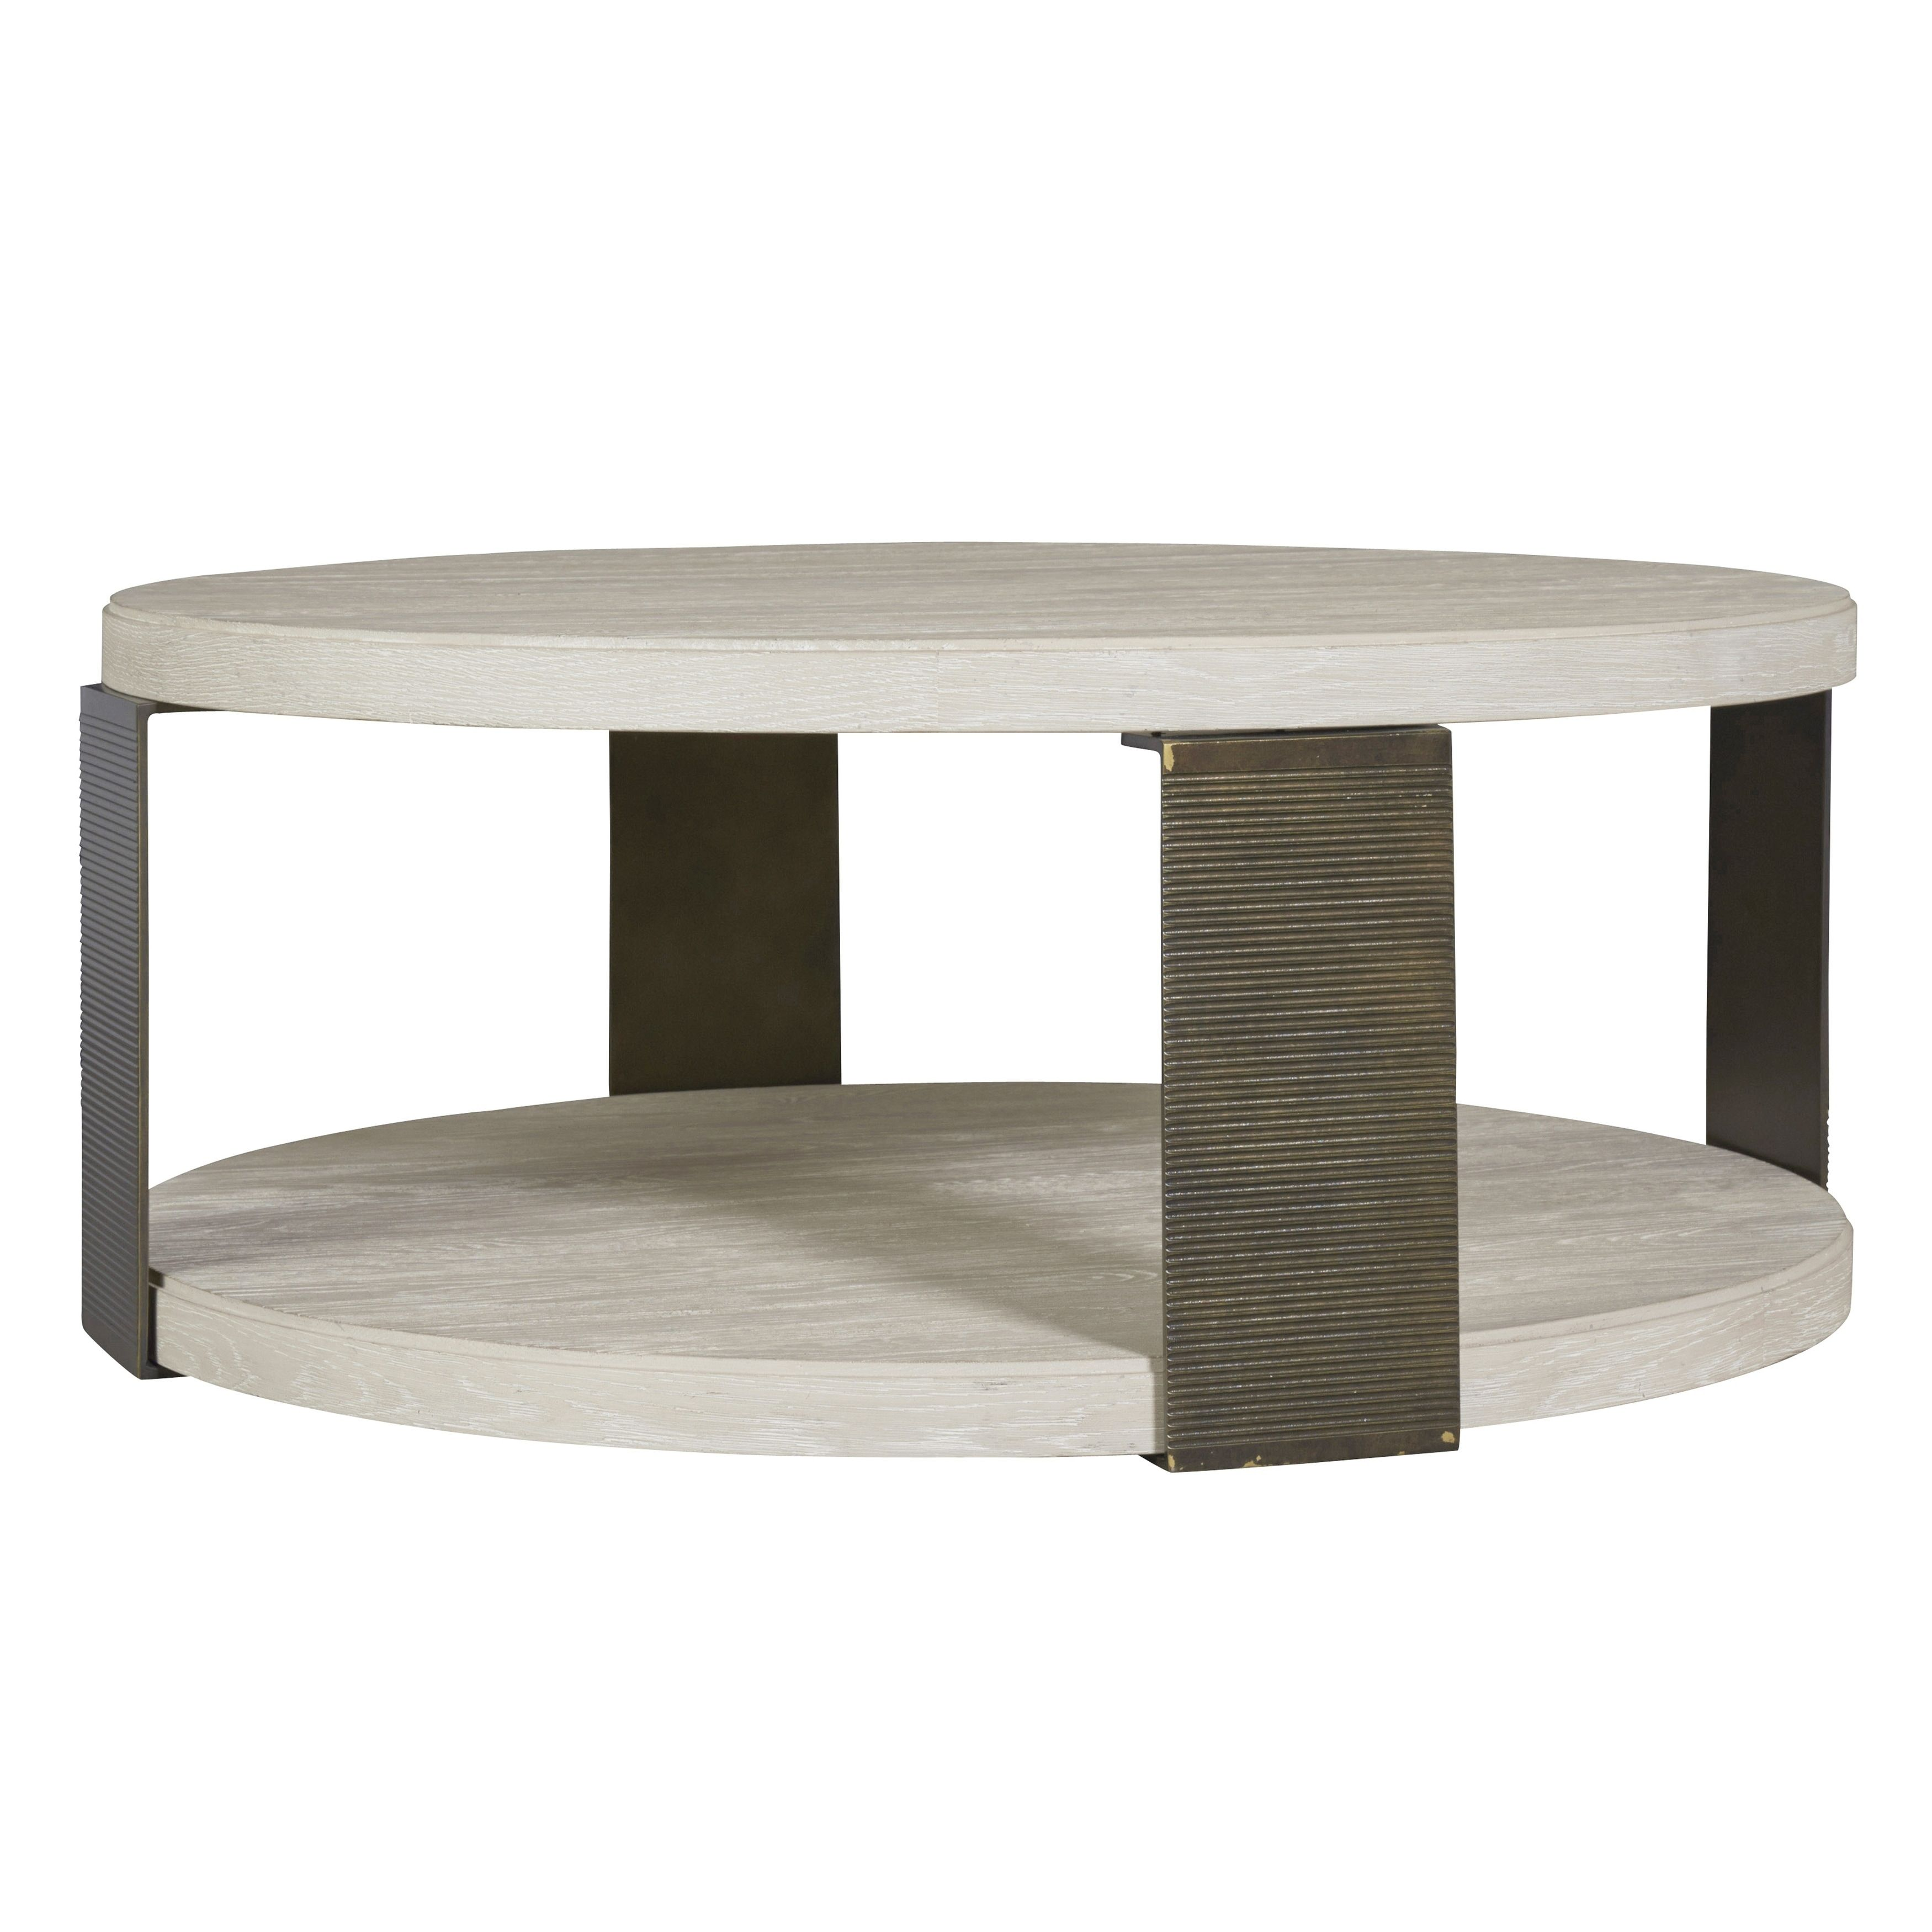 Our Best Living Room Furniture Deals Round Cocktail Tables Living Room Coffee Table Whitewash Coffee Table [ 3500 x 3500 Pixel ]